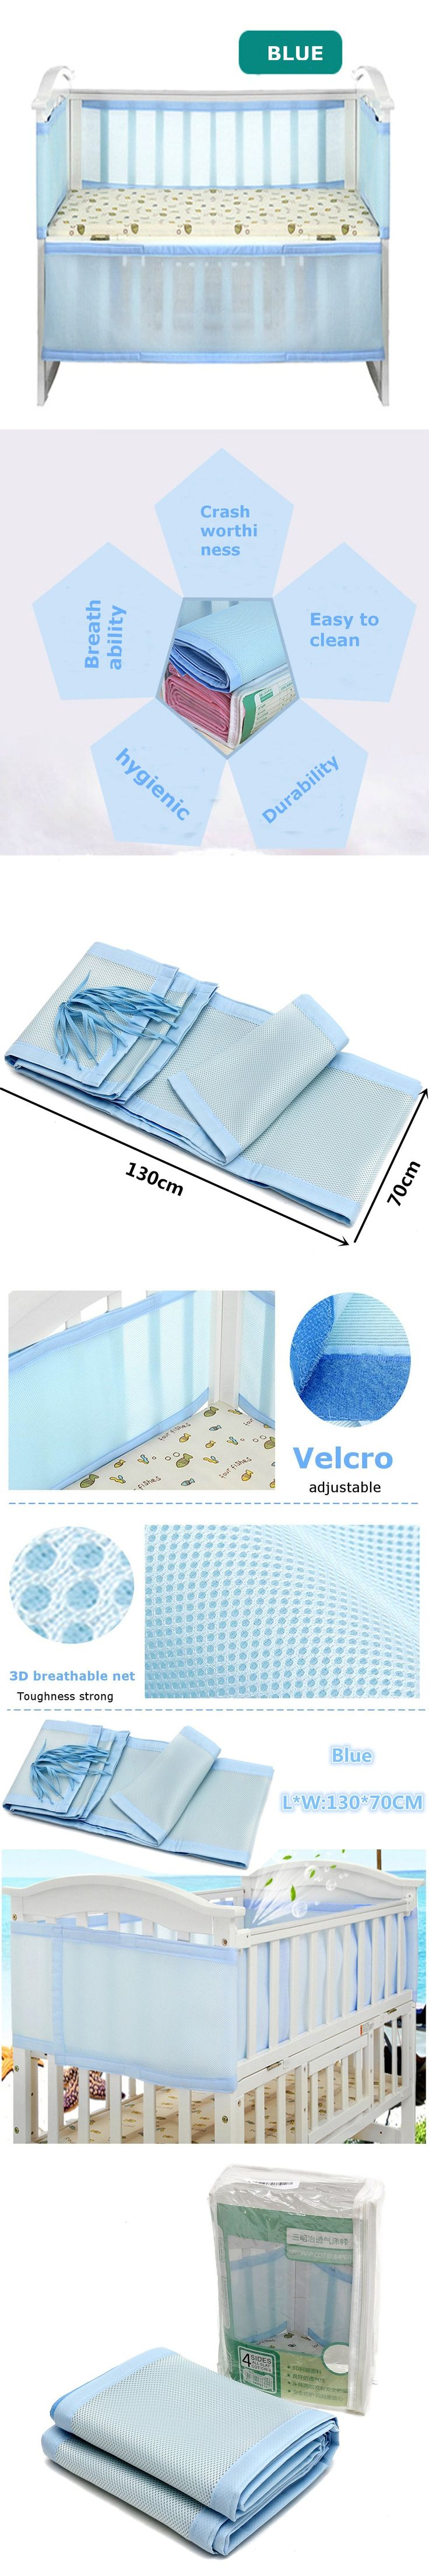 Breathable Blue Infant Baby Air Pad Cot Bumper Mesh Protection Cover Infantile Bedding Baby Safety Baby Care Supplies 130x70cm